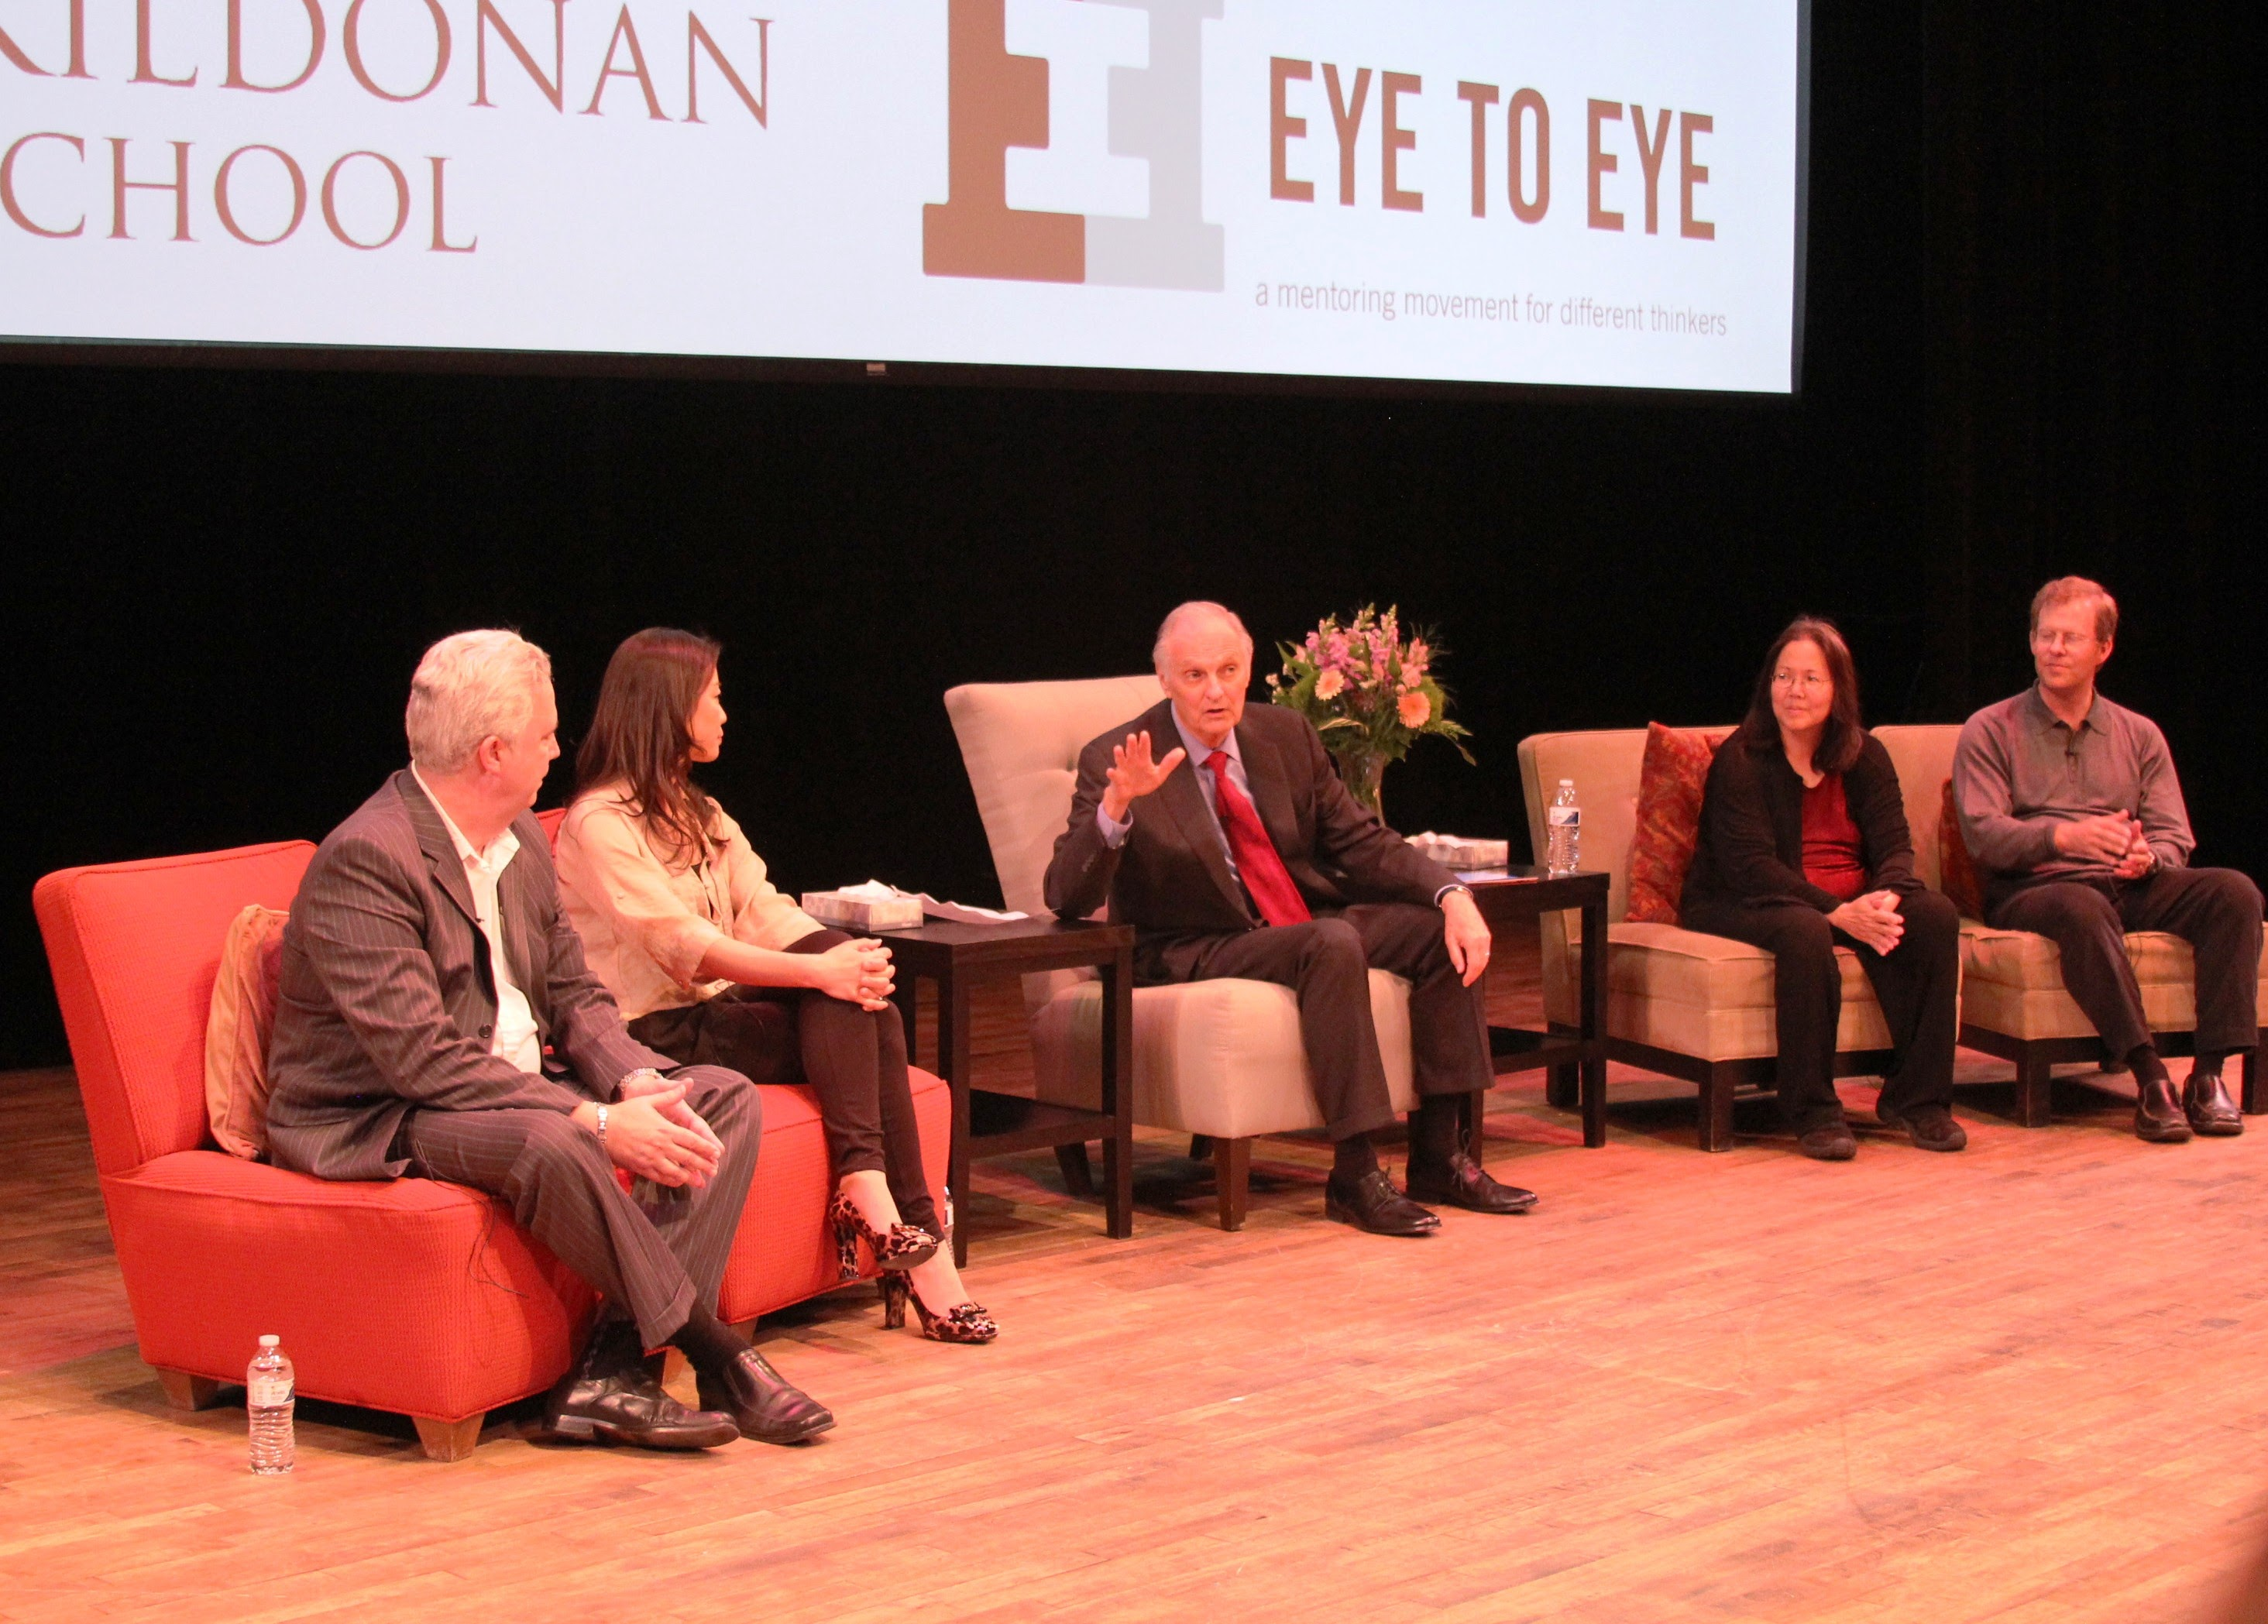 Four panelists sit with Alan Alda in front of Kildonan School and Eye to Eye banners.